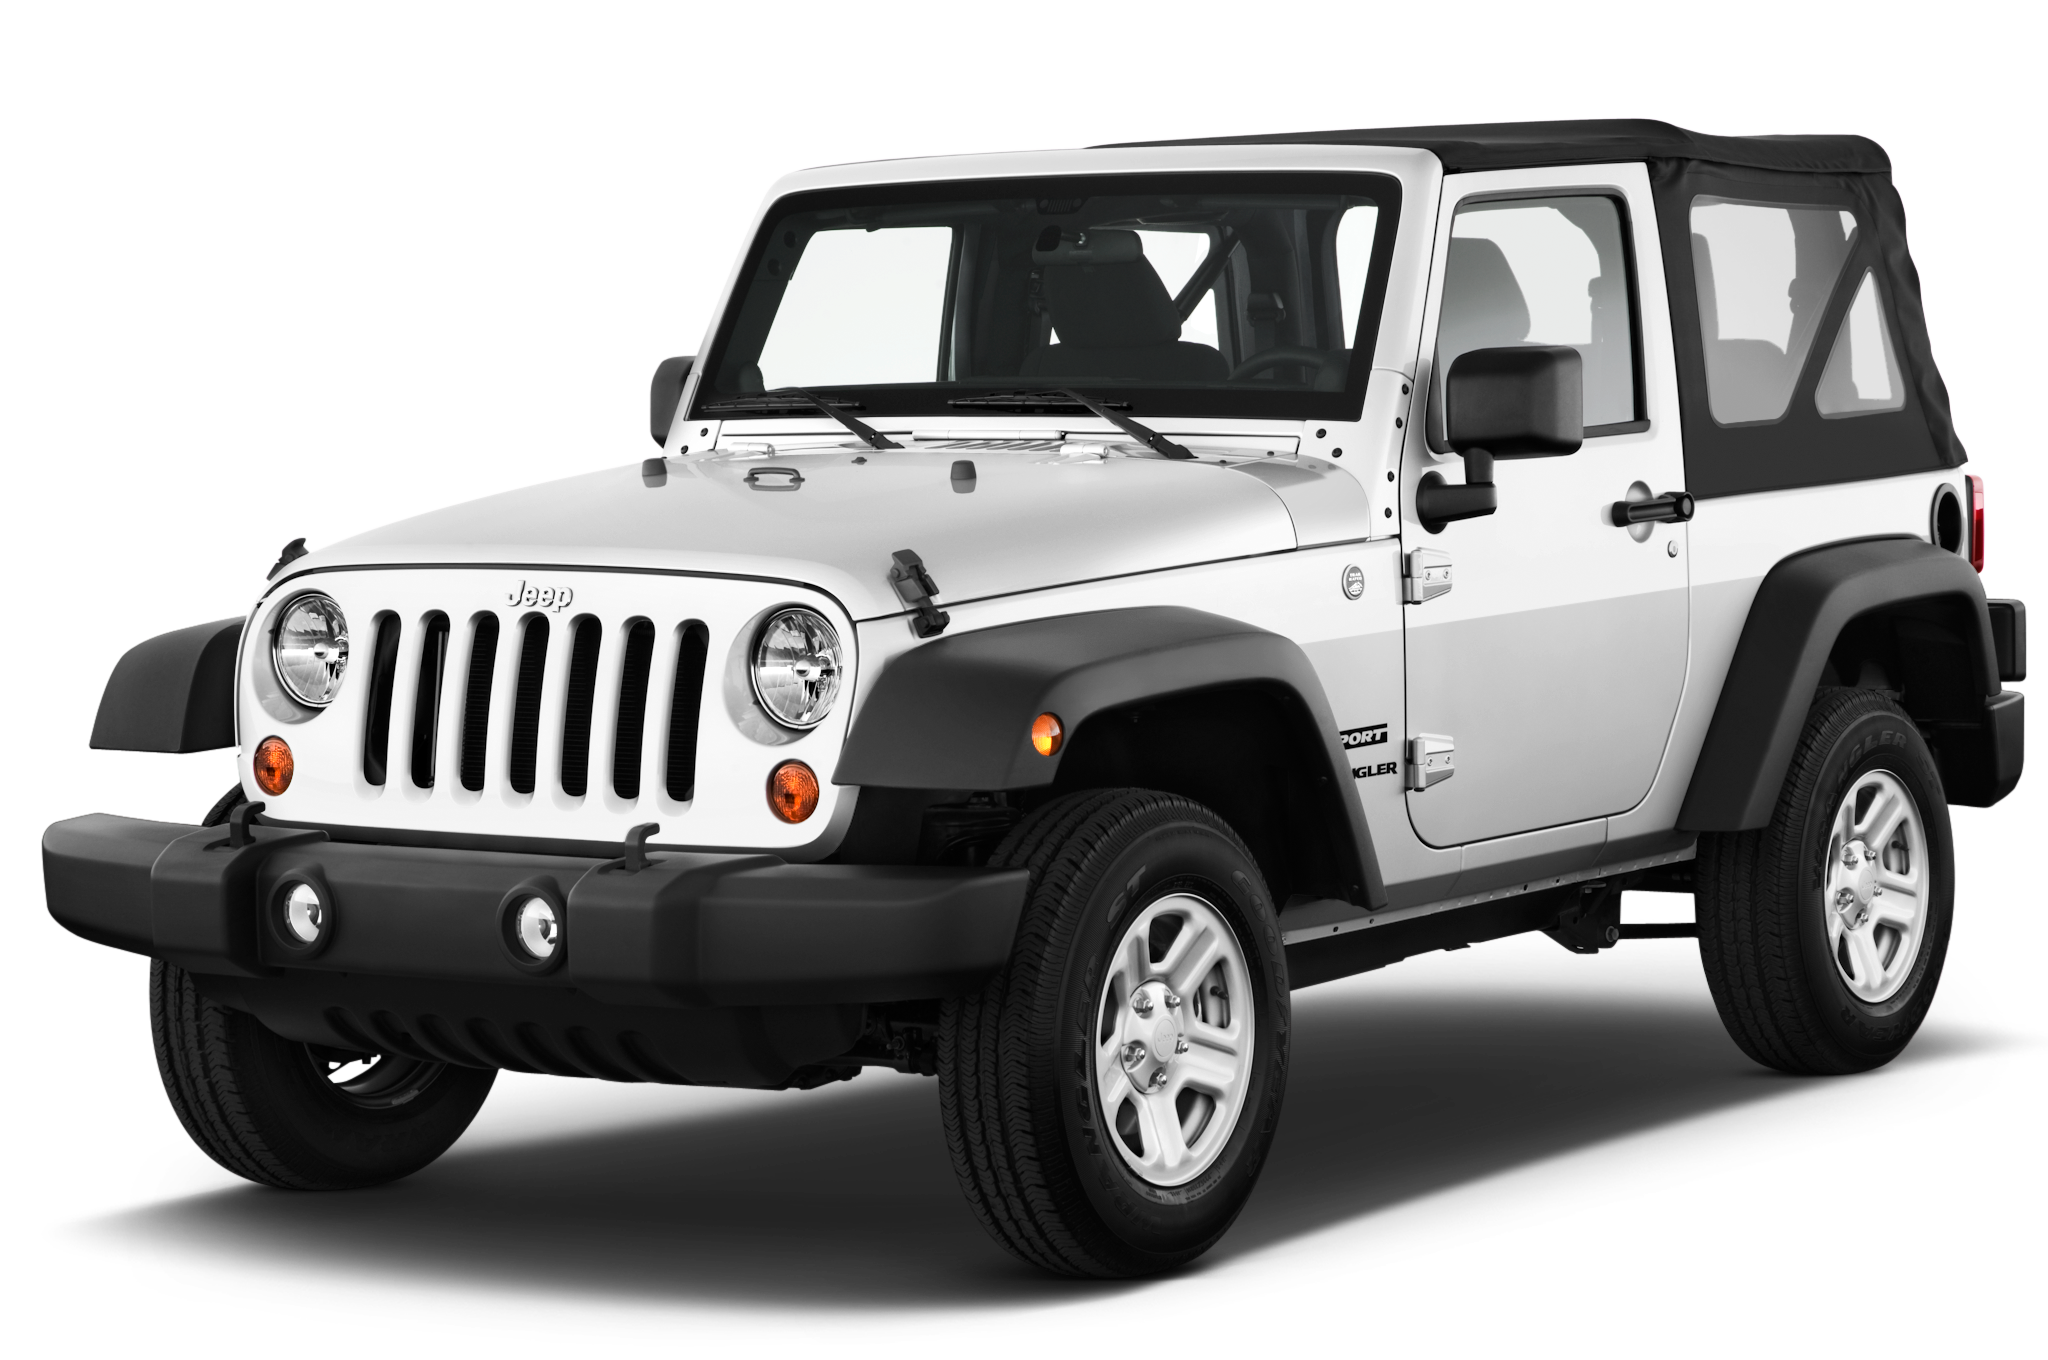 2016 jeep wrangler png. Reviews and rating